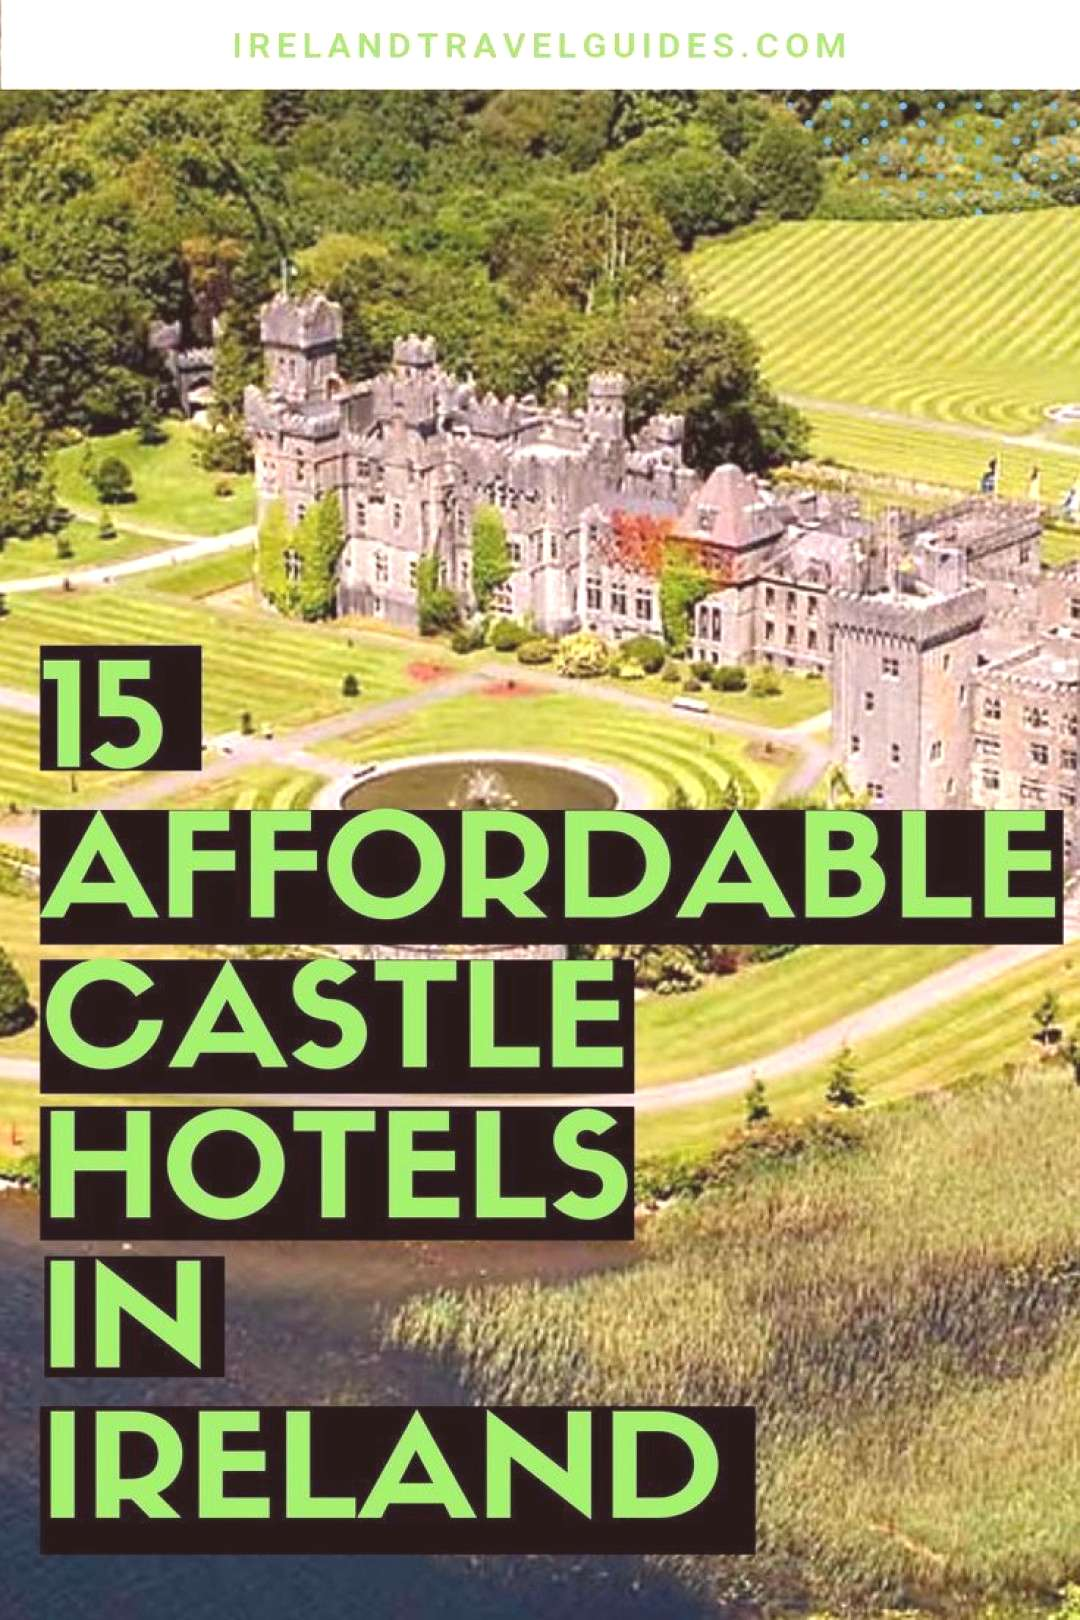 15 Affordable Castle Hotels In Ireland That Won't Break The Bank - Ireland Travel Guides 15 Afforda